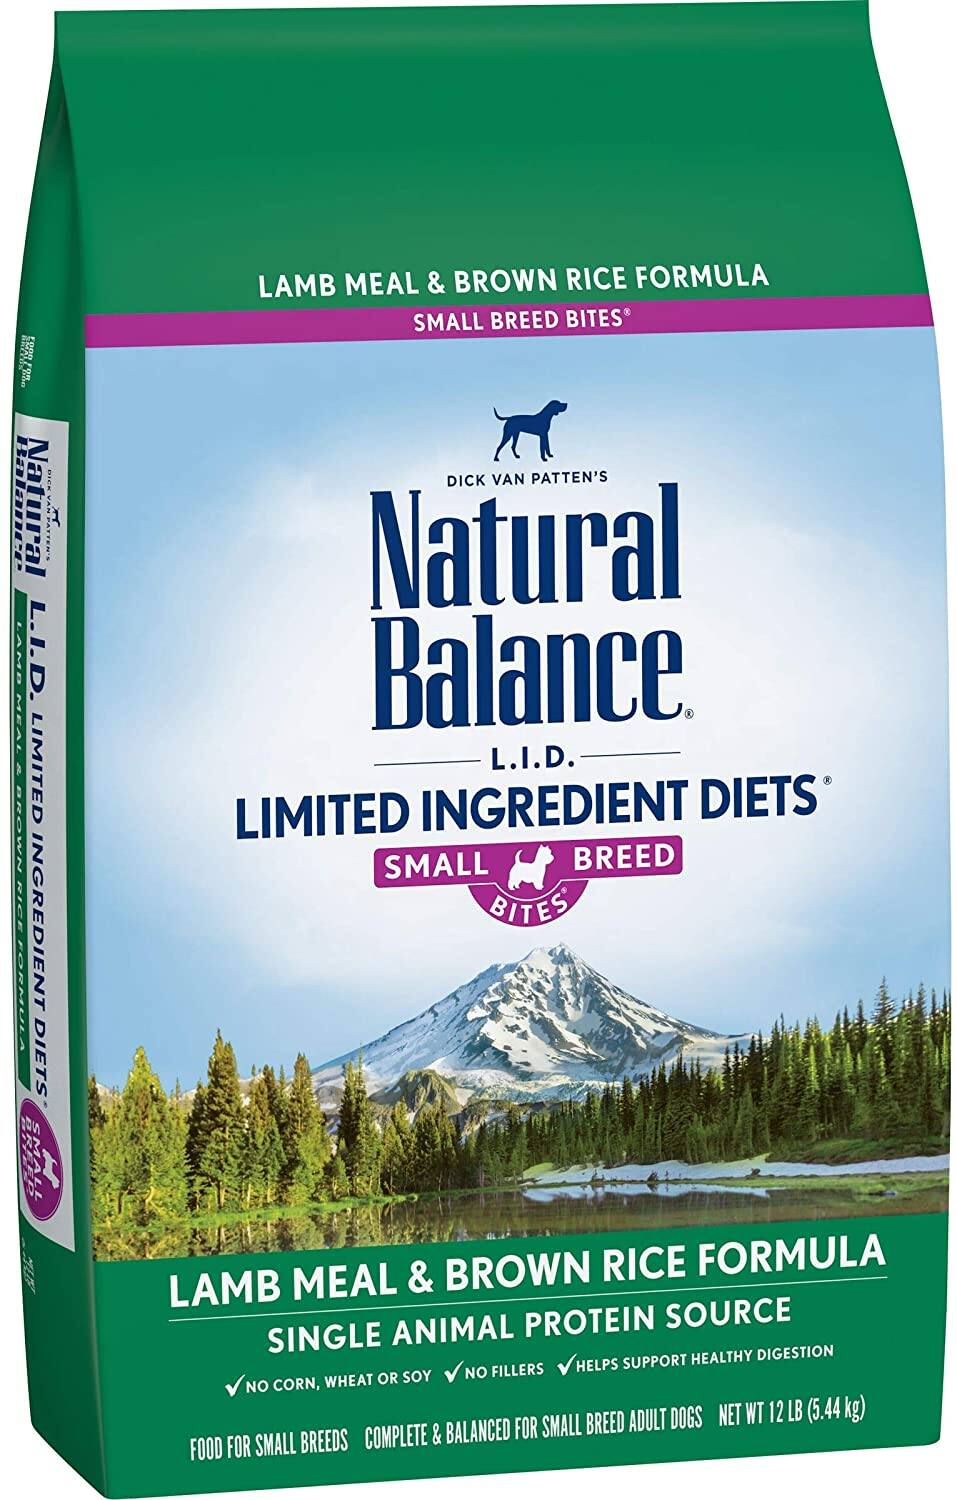 12-Lbs Natural Balance Limited Ingredient Diet Small Breed Dry Dog Food (w/ grains) $15.45 w/ S&S + Free Shipping w/ Amazon Prime